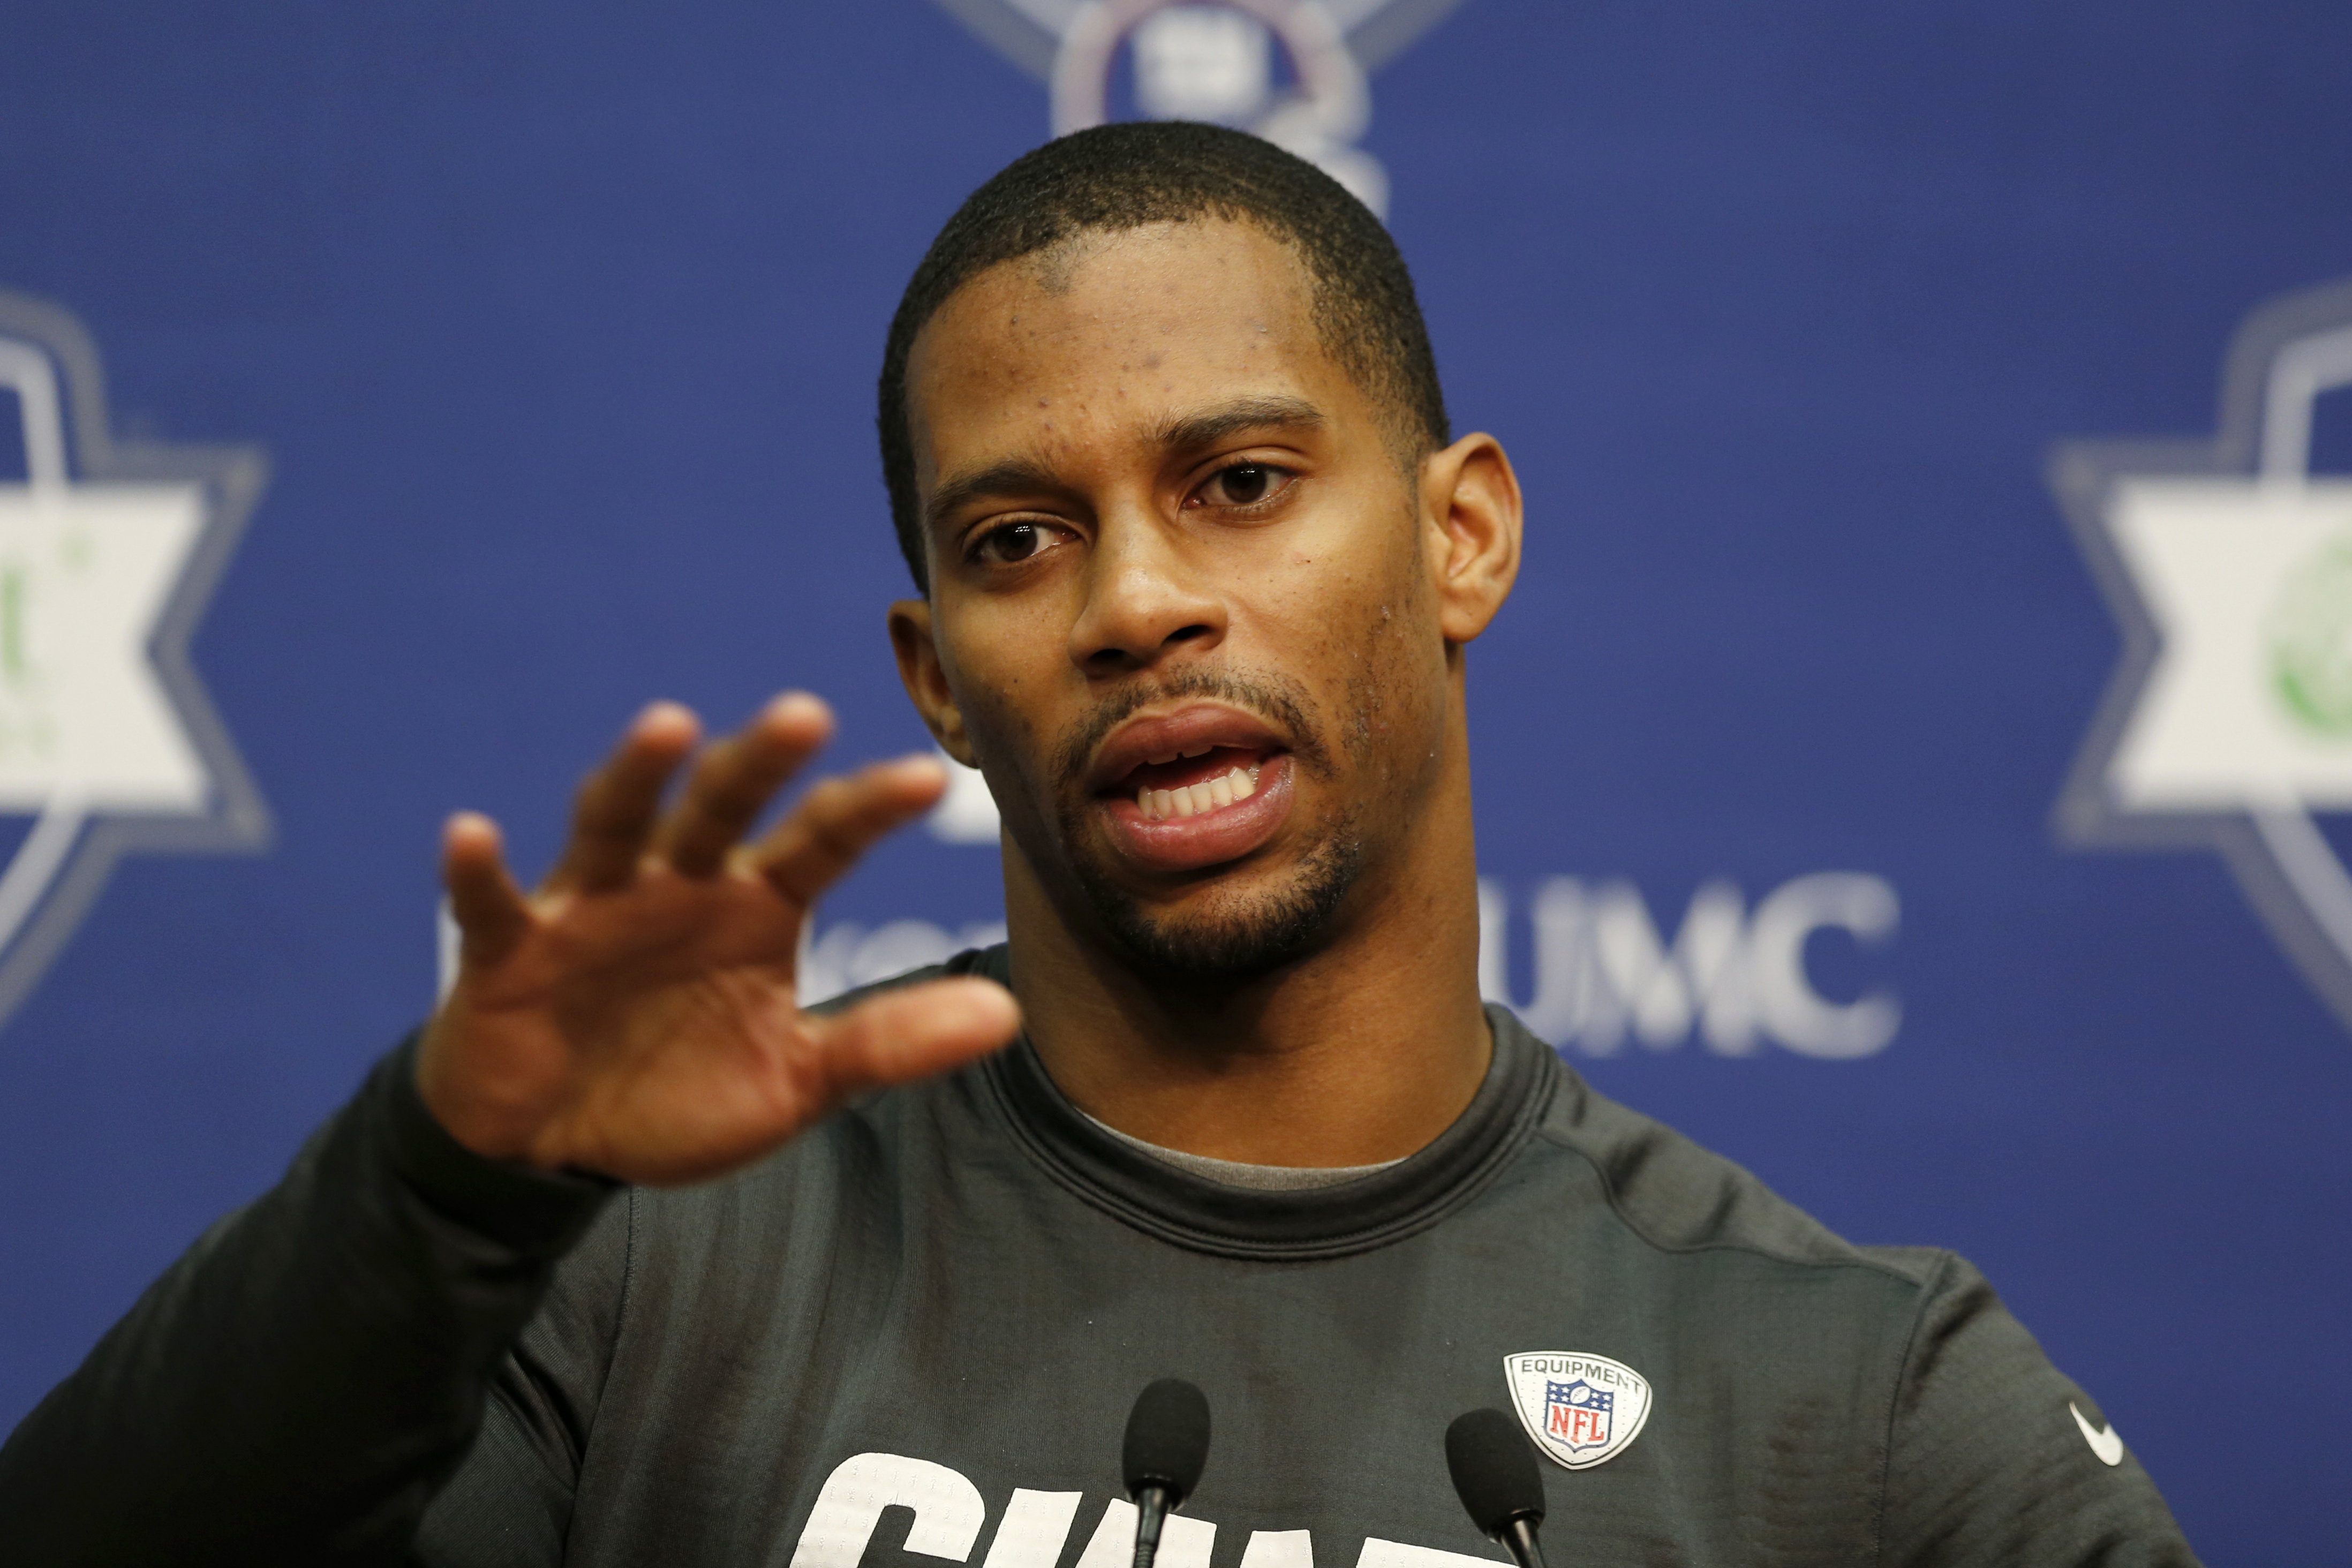 New York Giants wide receiver Victor Cruz talks during an NFL football news conference, Thursday, April 23, 2015, in East Rutherford, N.J. (AP Photo/Julio Cortez)